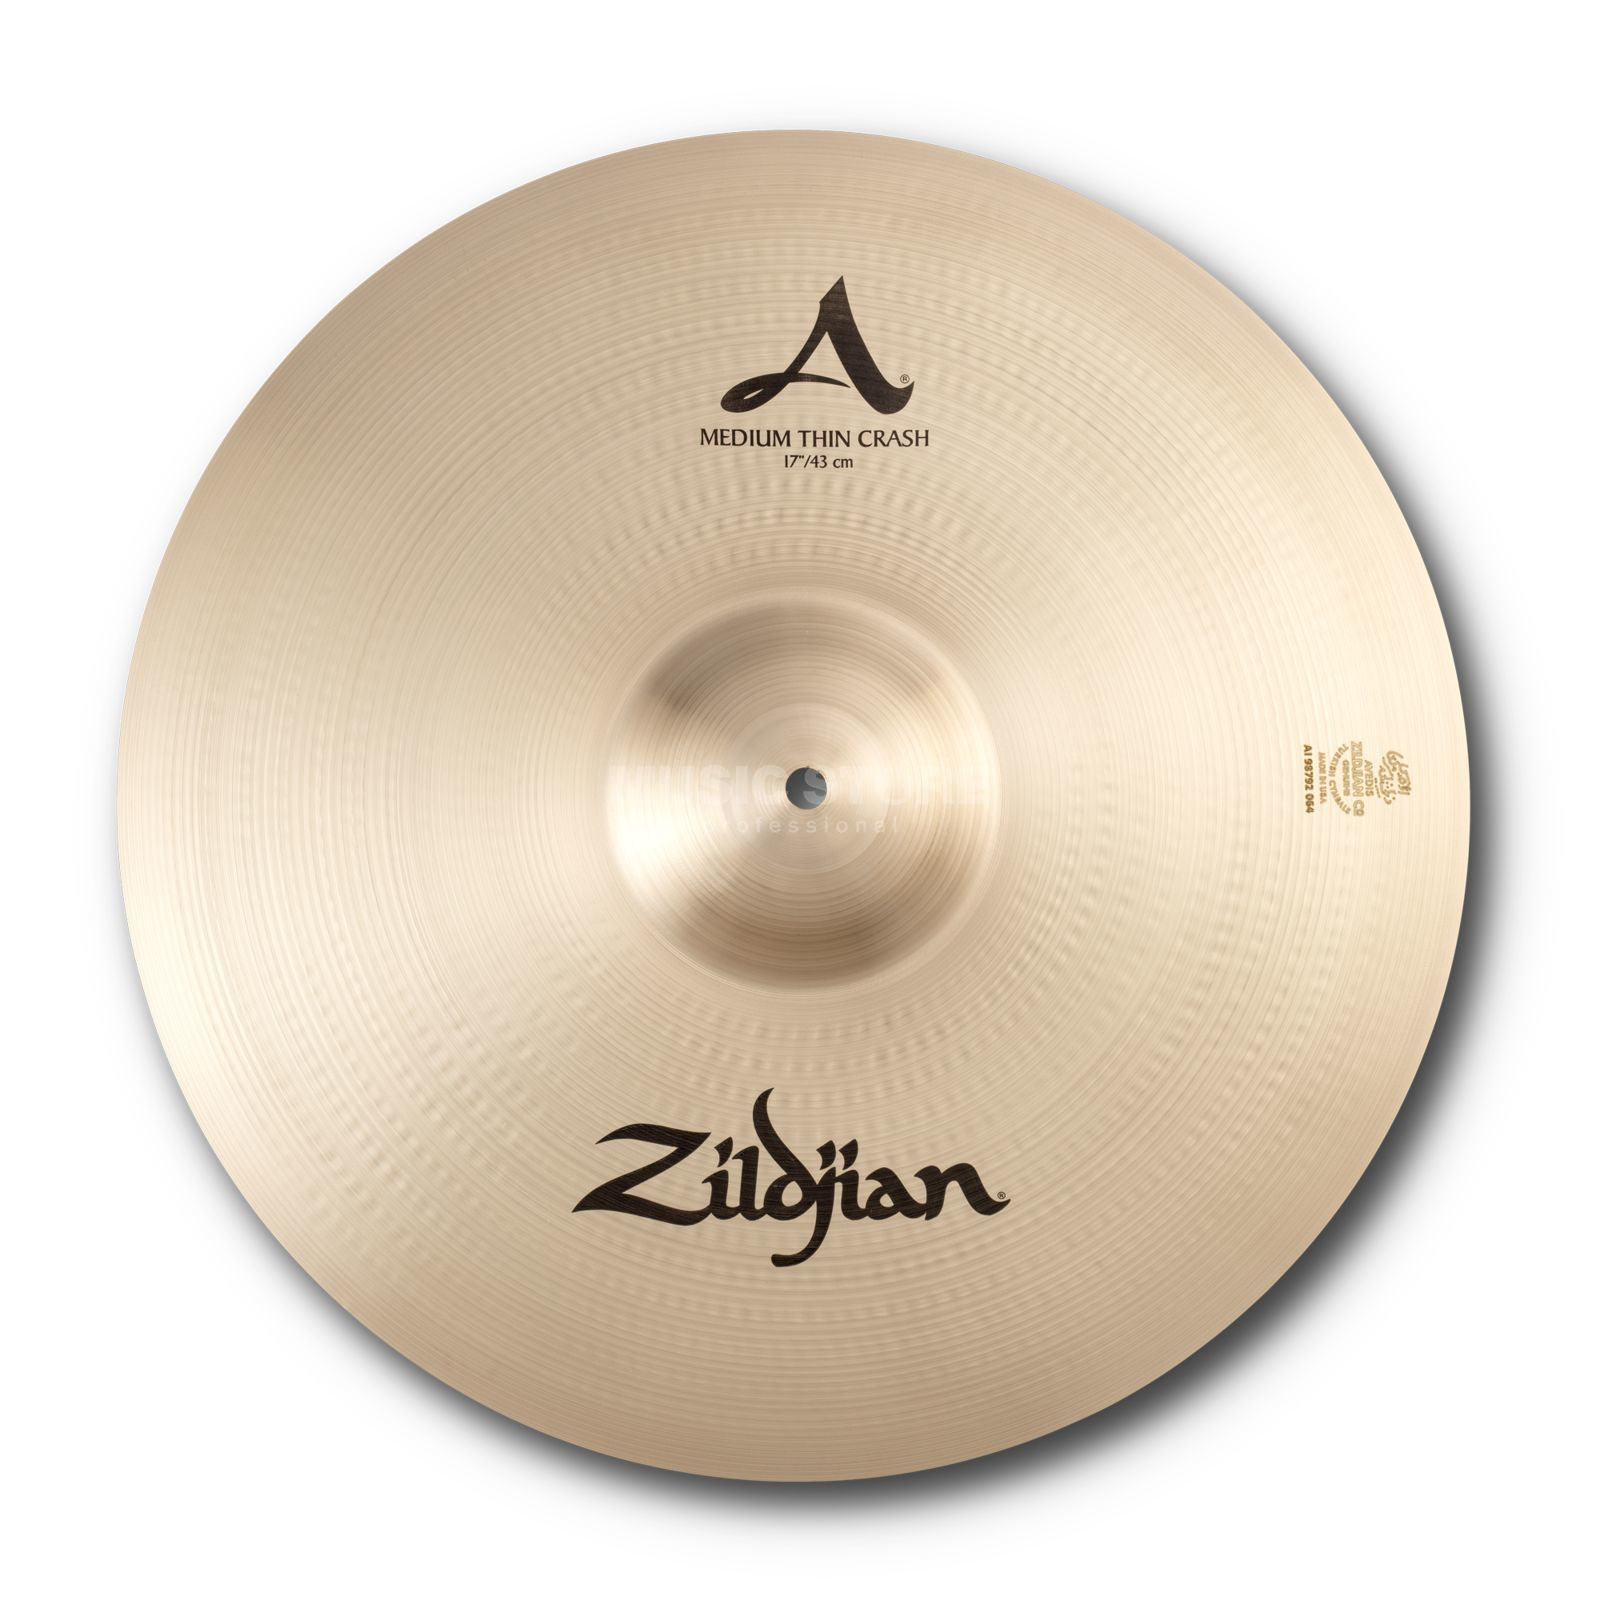 "Zildjian A' Zildjian Medium Thin Crash 17"" Produktbild"